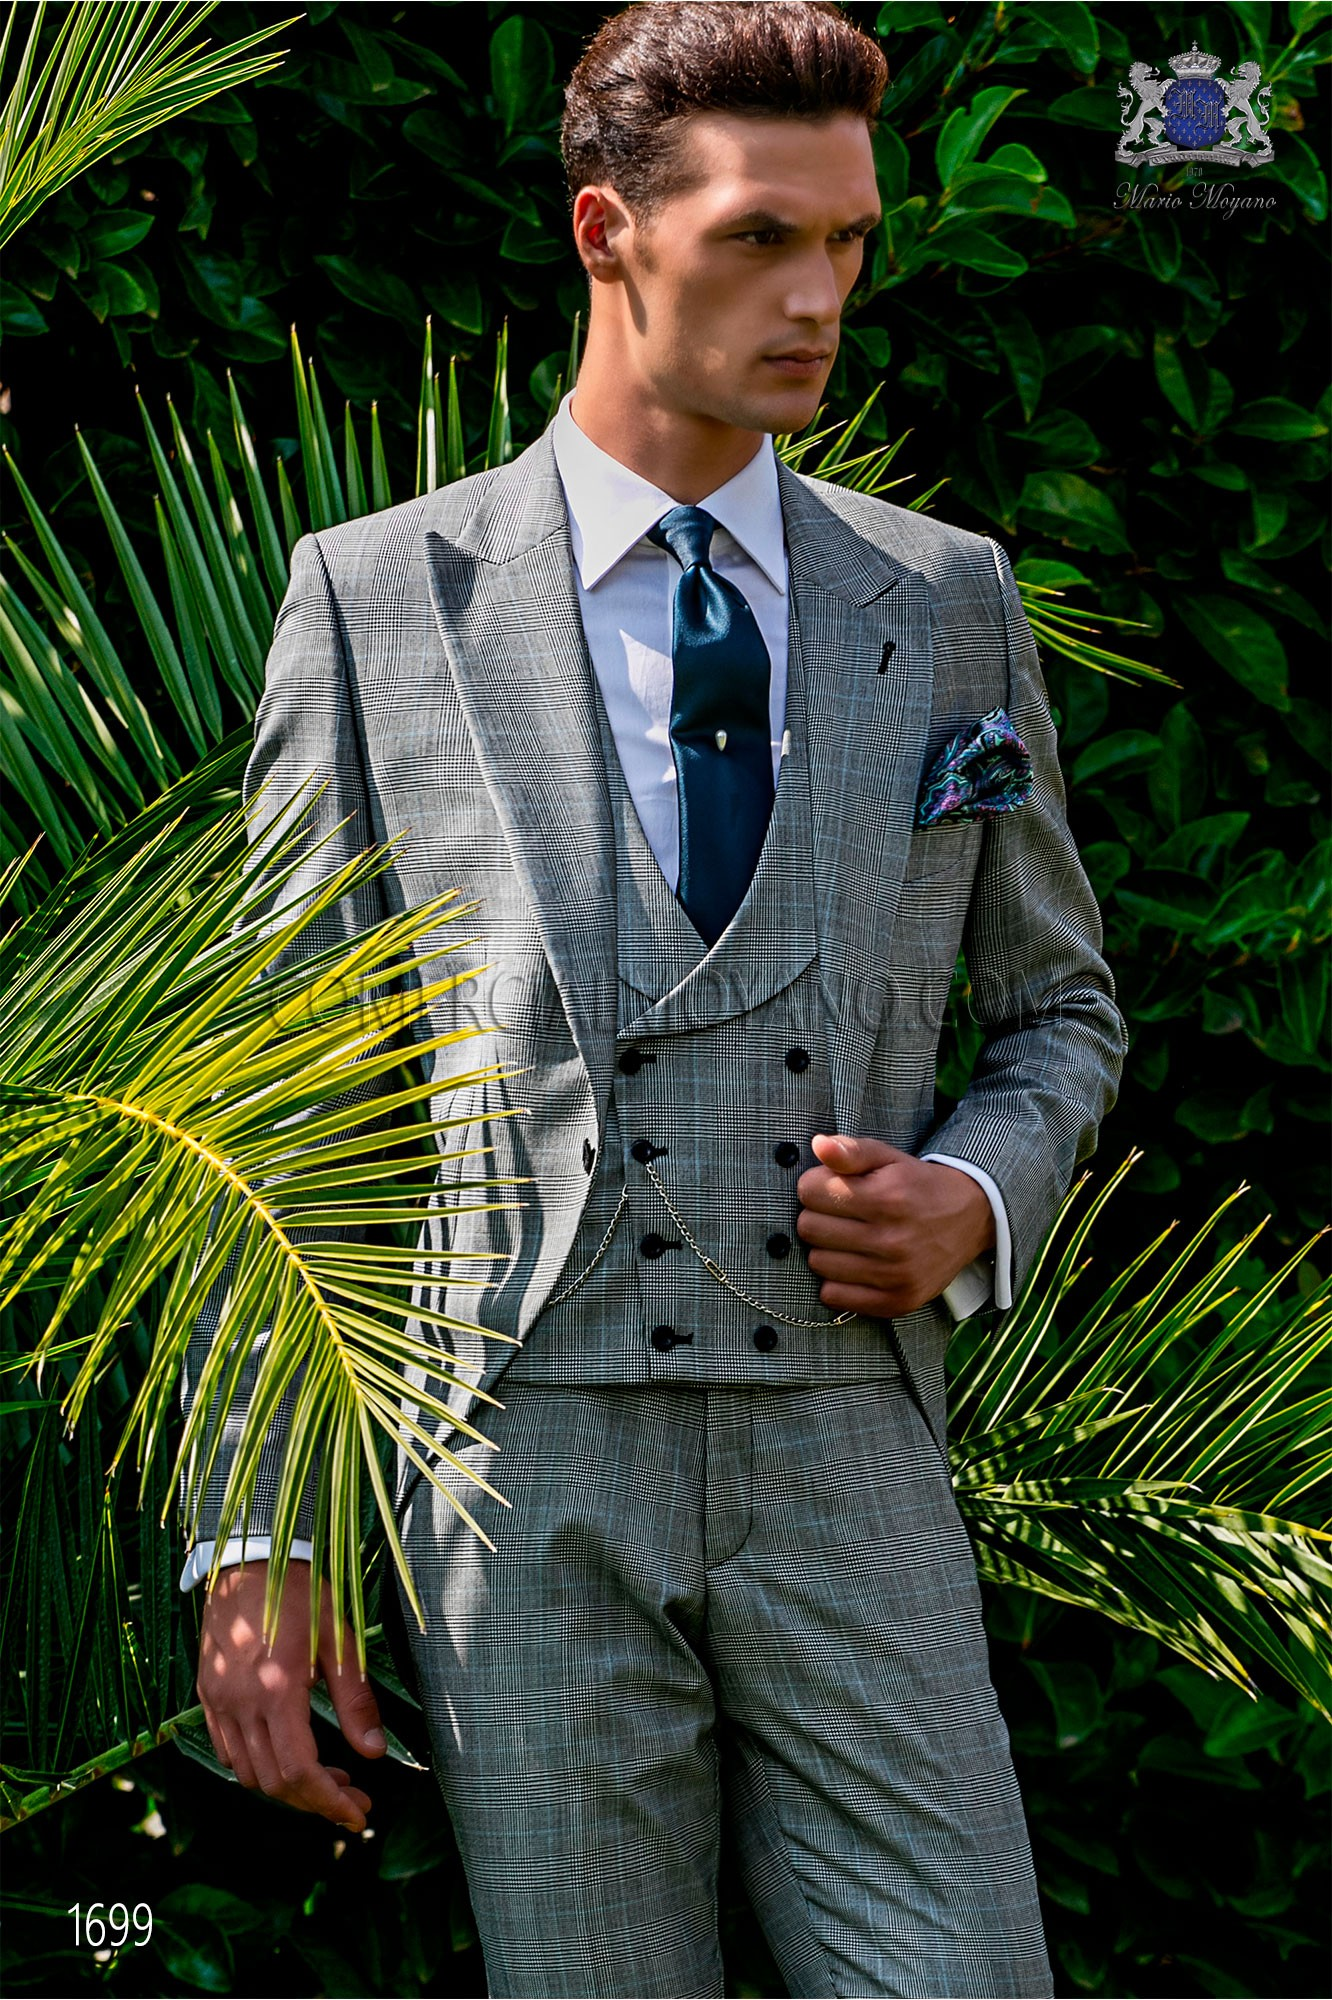 Bespoke Prince of Wales morning suit grey and blue model 1699 Ottavio Nuccio Gala